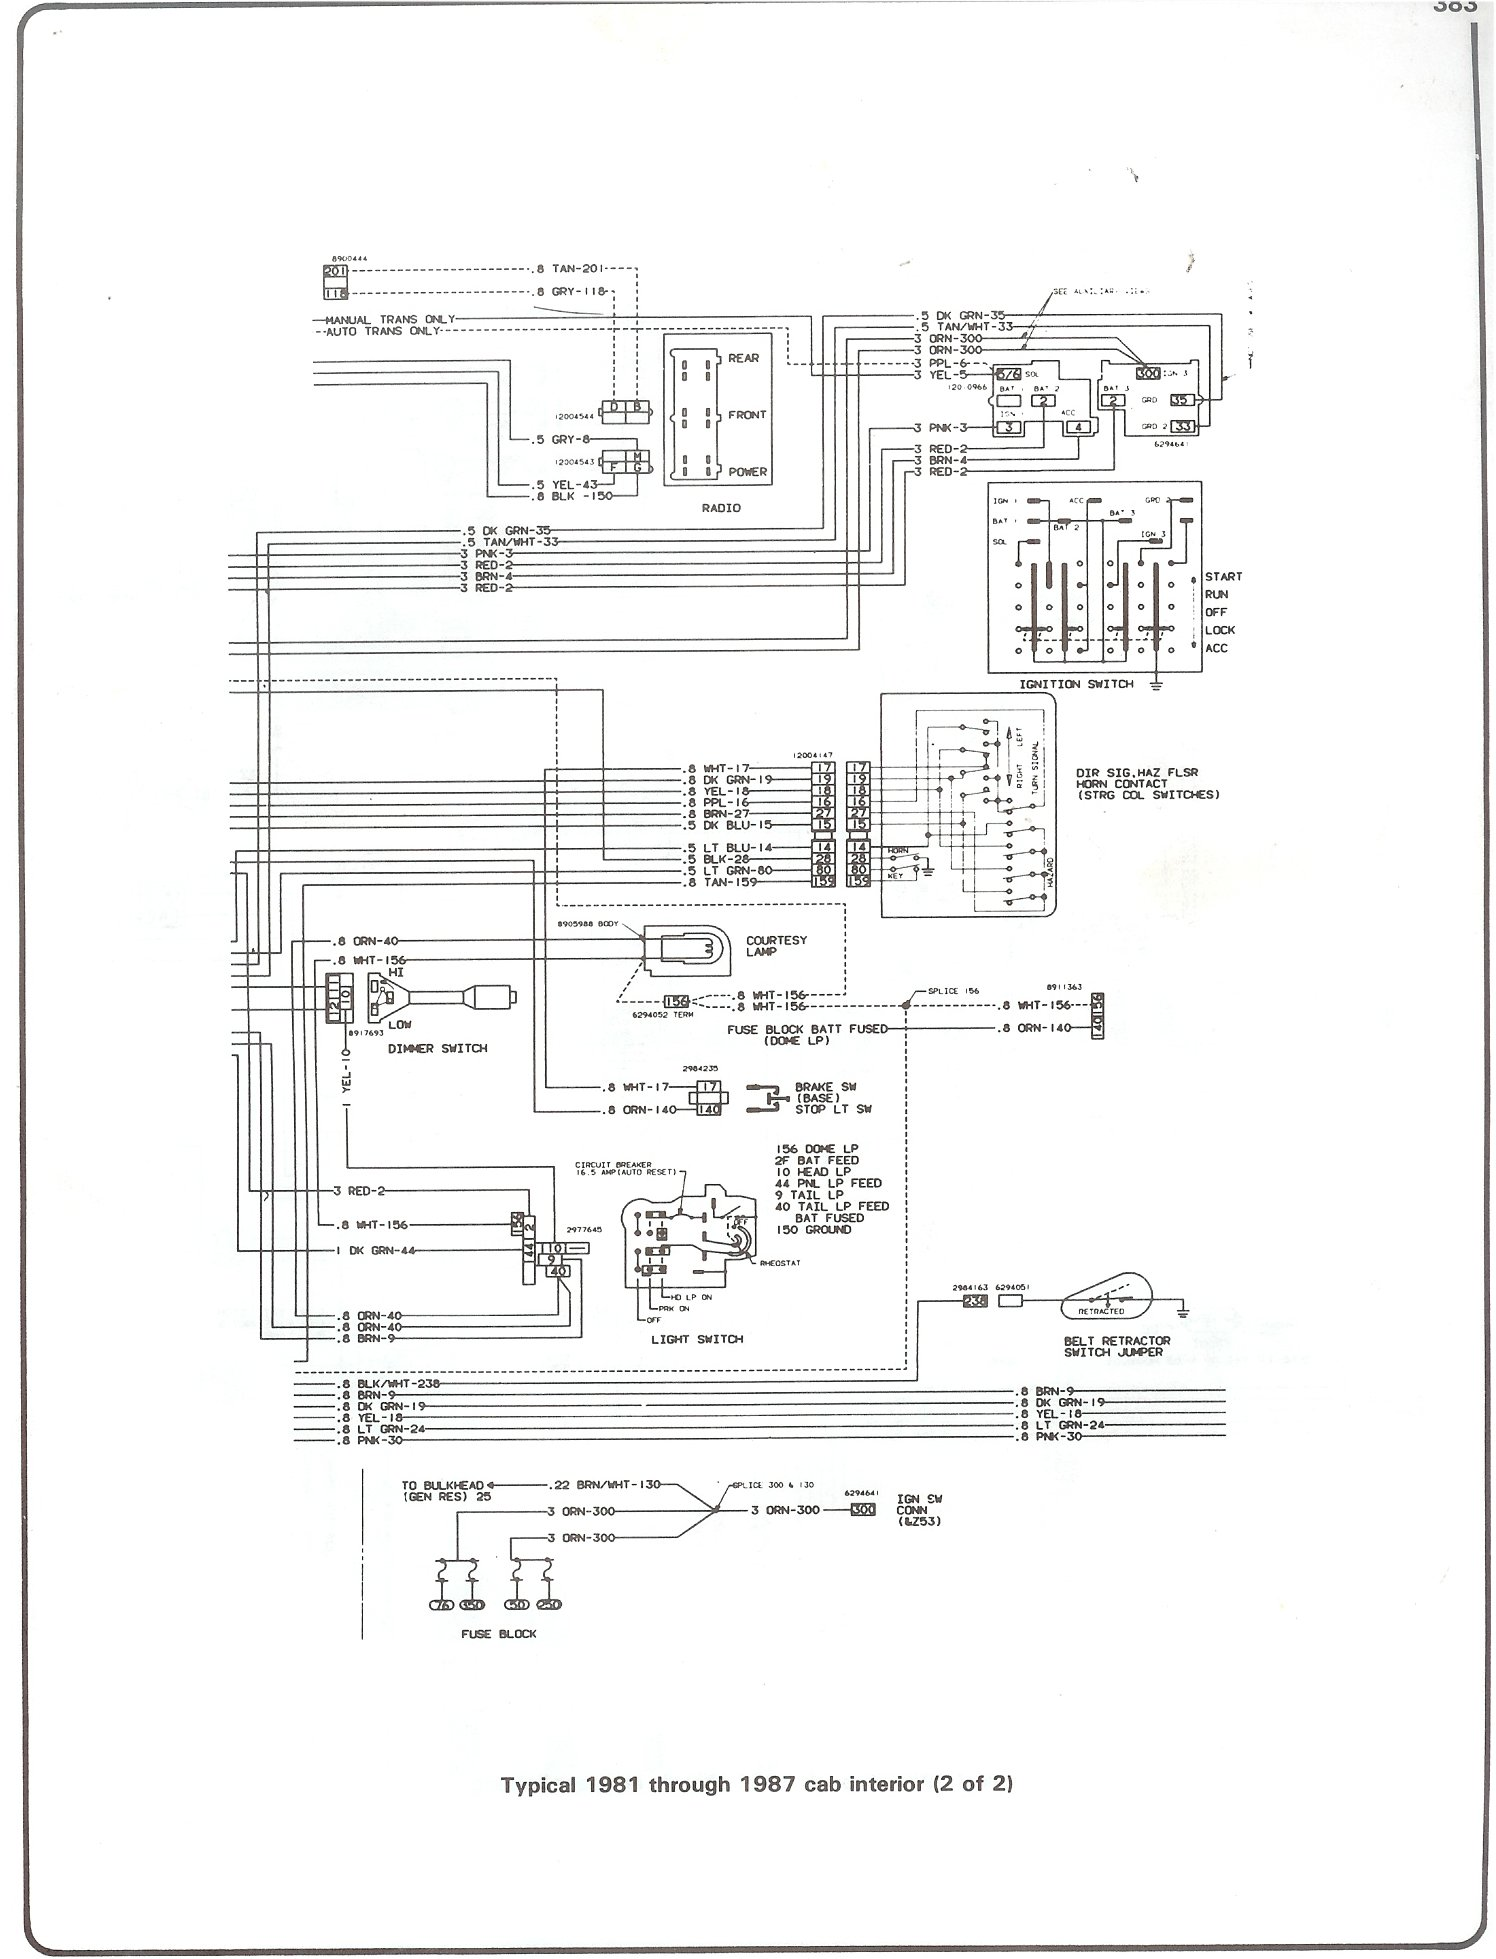 hight resolution of complete 73 87 wiring diagrams chevy wiring diagrams color 81 87 cab interior page 2